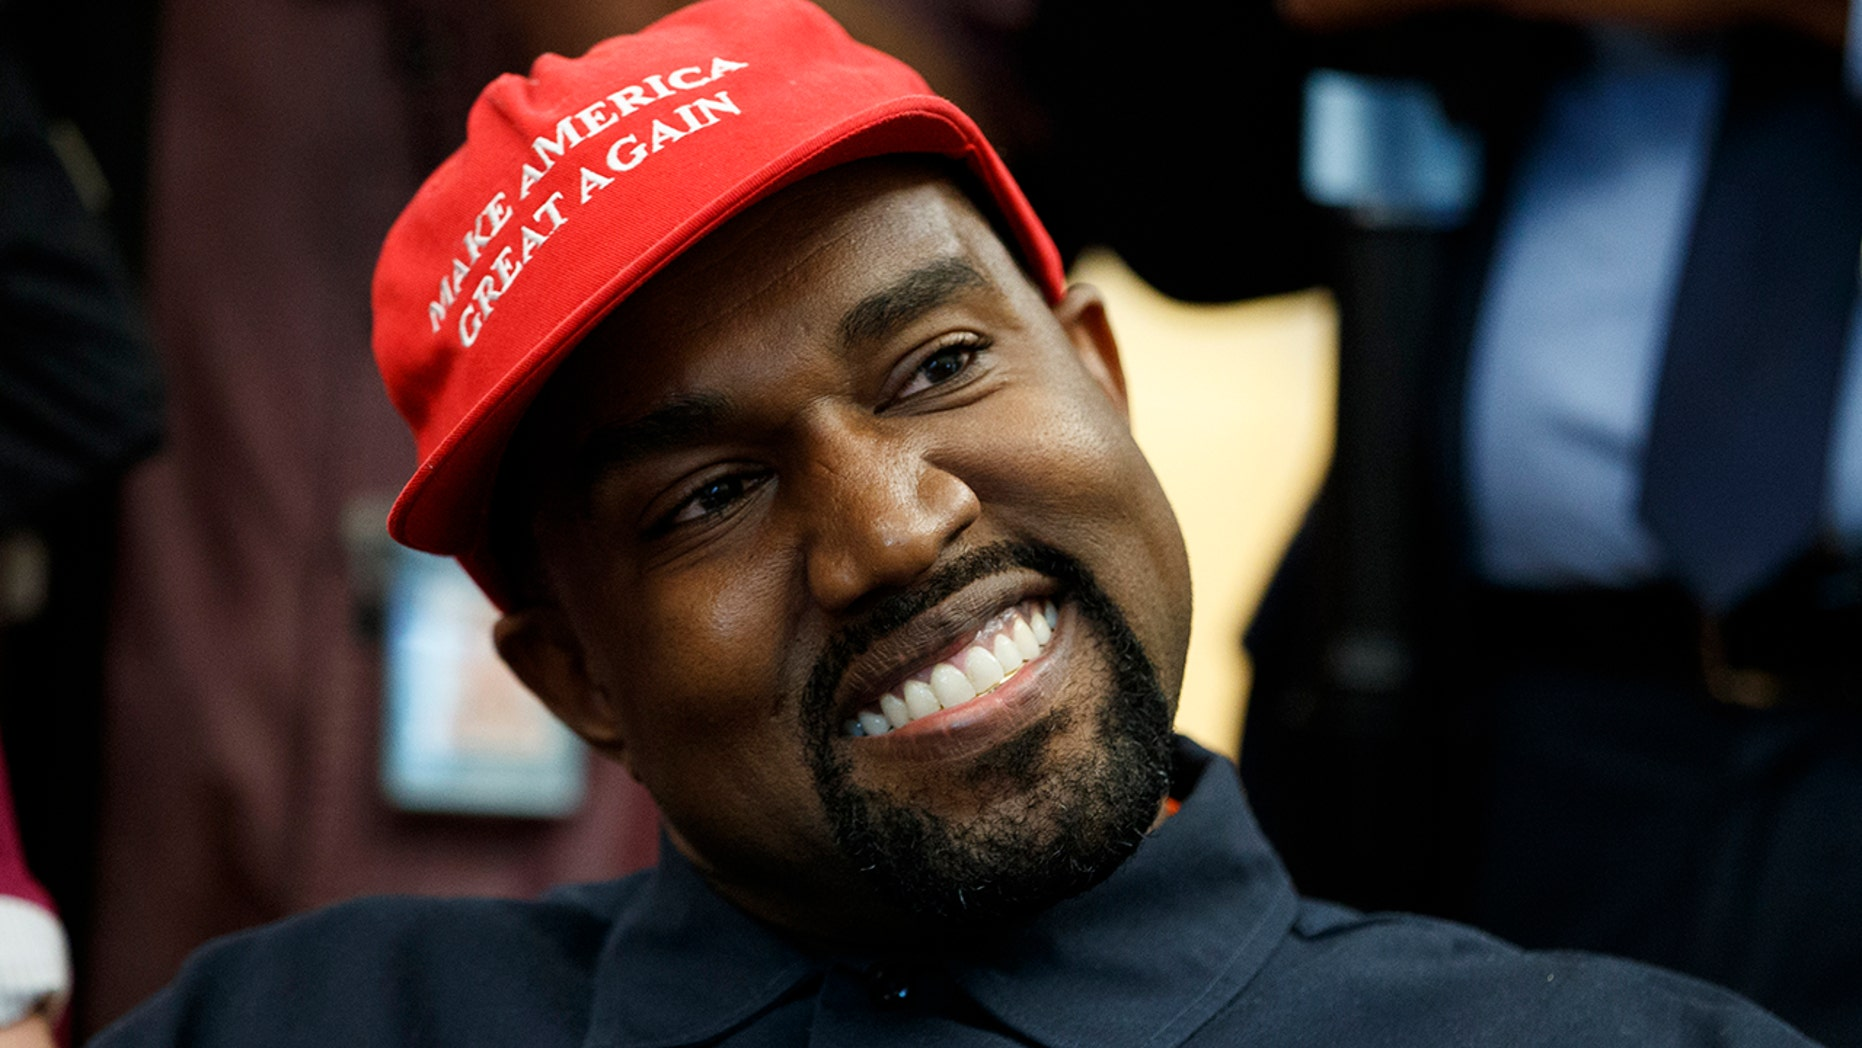 Rapper Kanye West smiles as he listens to a question from a reporter during a meeting in the Oval Office of the White House with President Donald Trump.